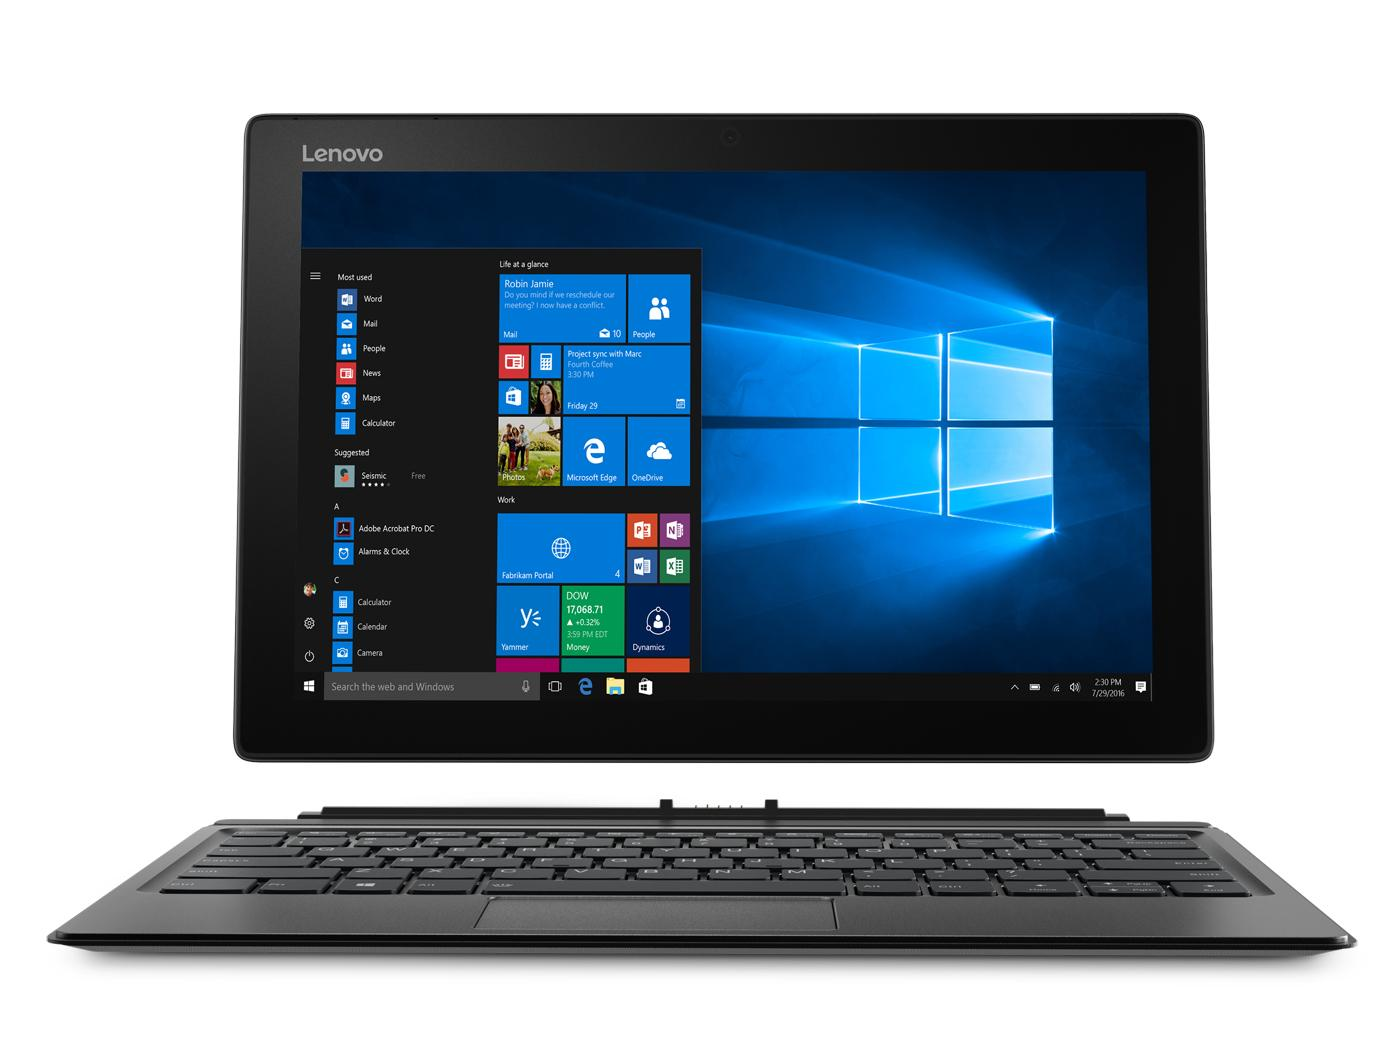 Image du PC portable Lenovo Miix 520-12IKB (20M3000JFR) 4G Refresh